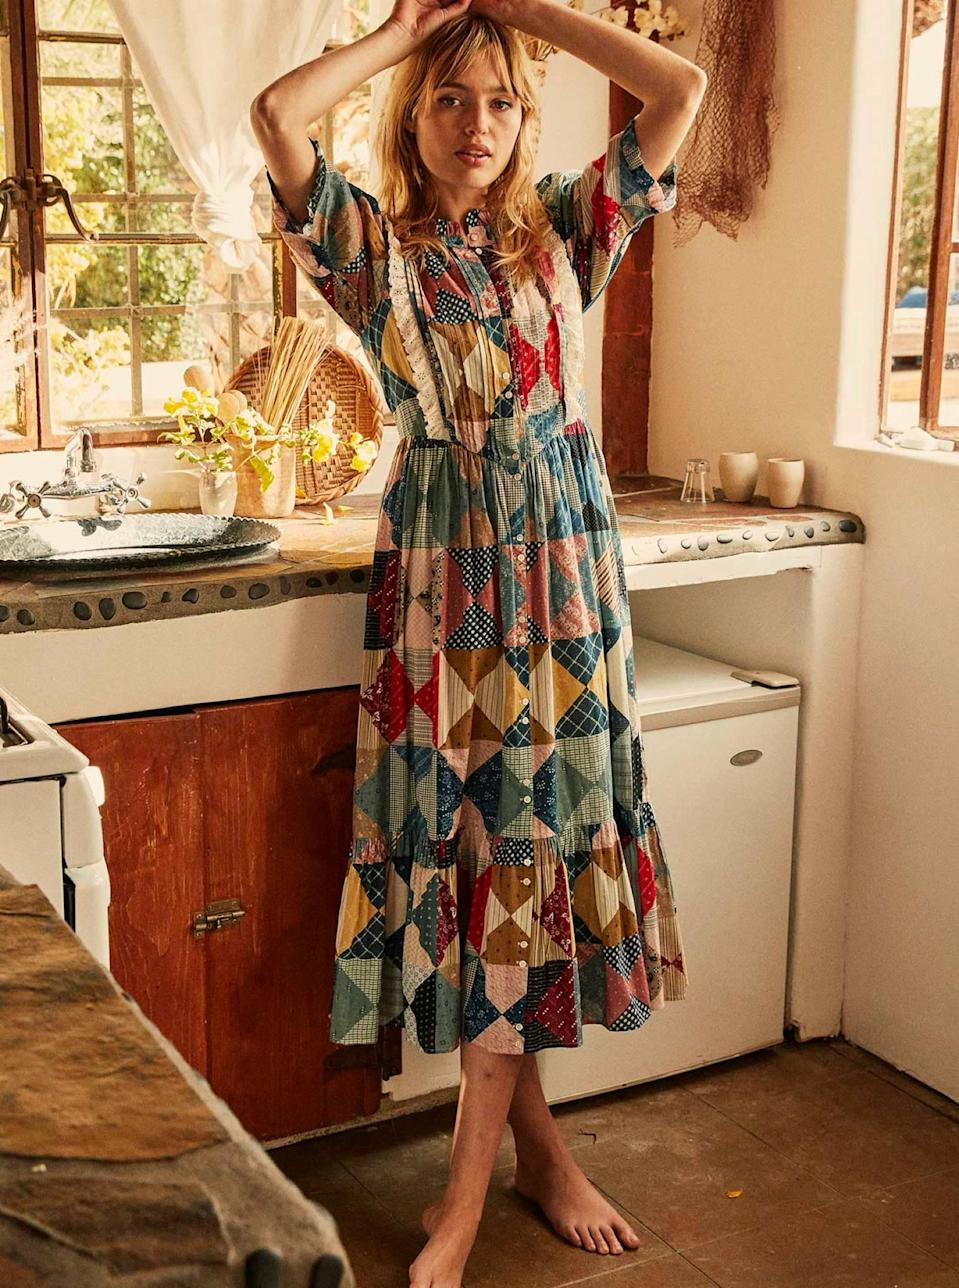 """Patchwork is happening, so all of you '70s-inspired ladies should give the retro trend a try with the help of the top-tier dressmakers at Dôen. $298, Dôen. <a href=""""https://shopdoen.com/collections/dresses/products/darby-dress-patchwork-print"""" rel=""""nofollow noopener"""" target=""""_blank"""" data-ylk=""""slk:Get it now!"""" class=""""link rapid-noclick-resp"""">Get it now!</a>"""